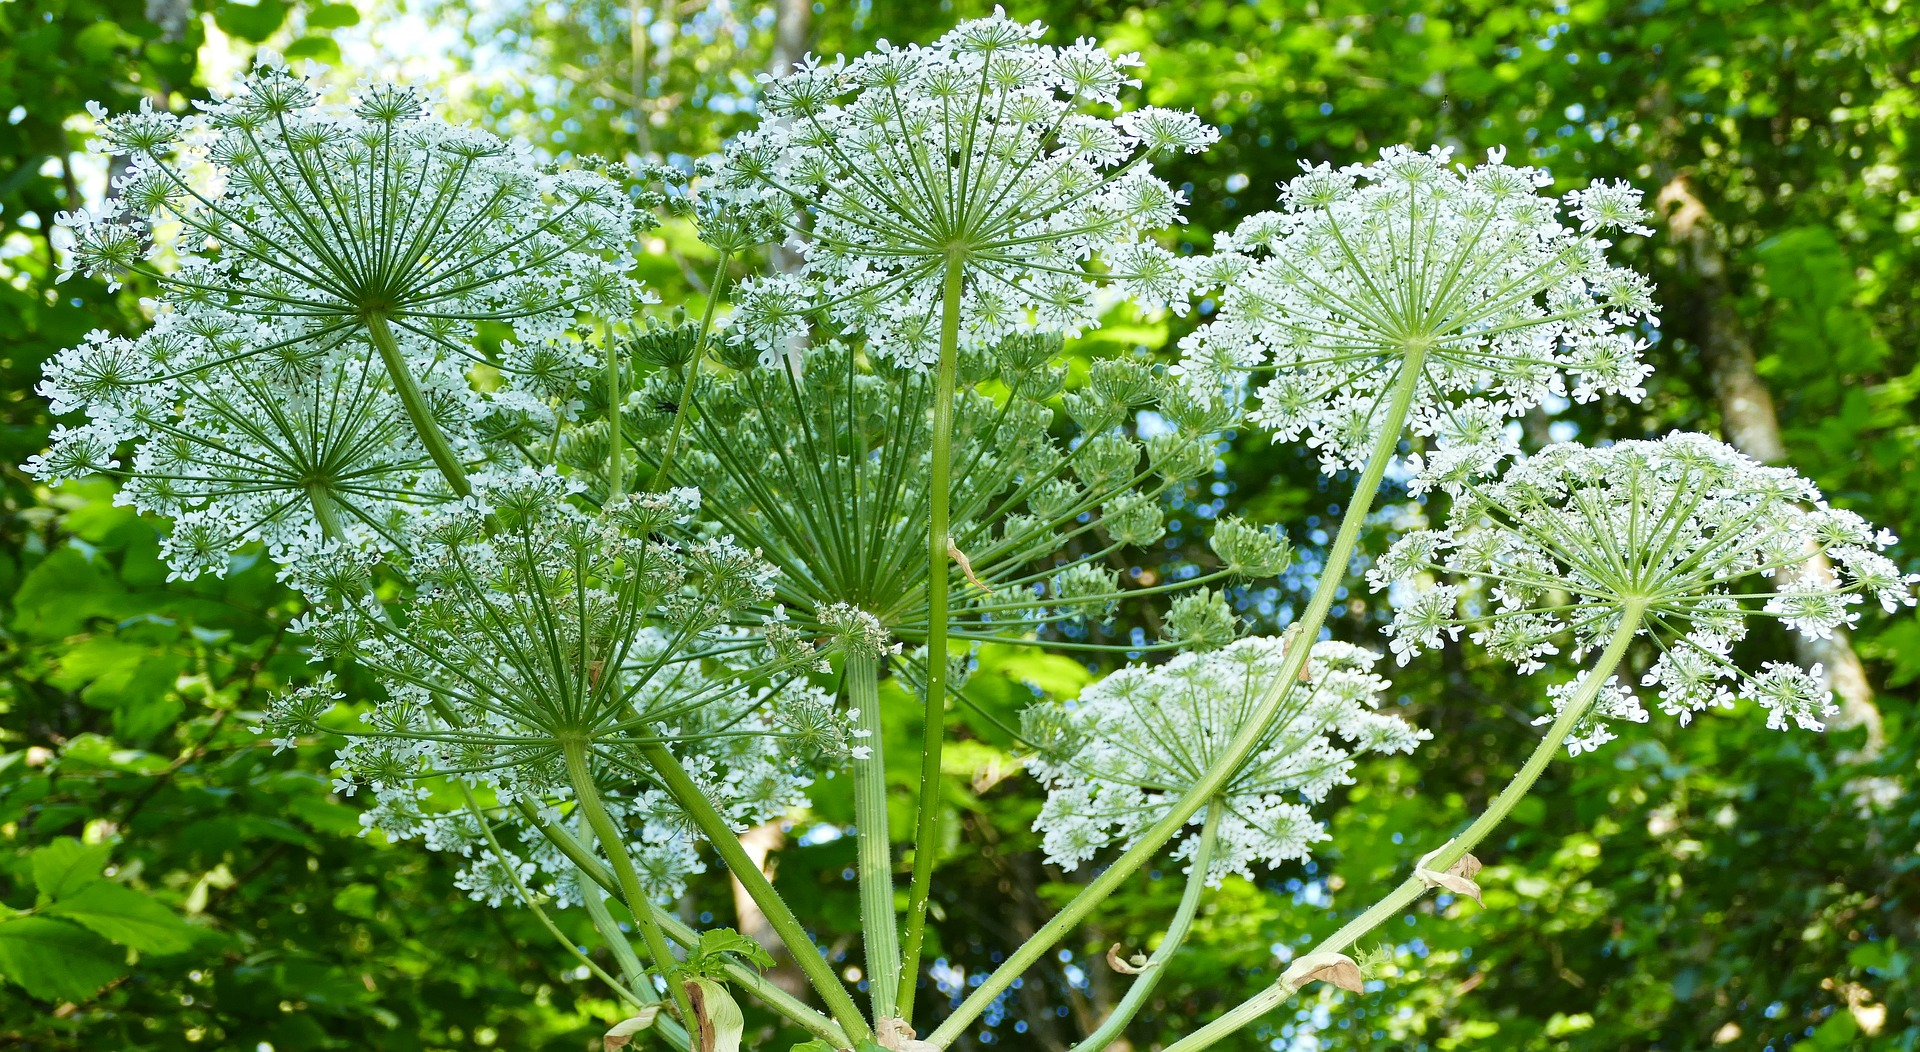 Giant Hog Weed What Is Giant Hogweed? Plant Leaves Teenager With Third